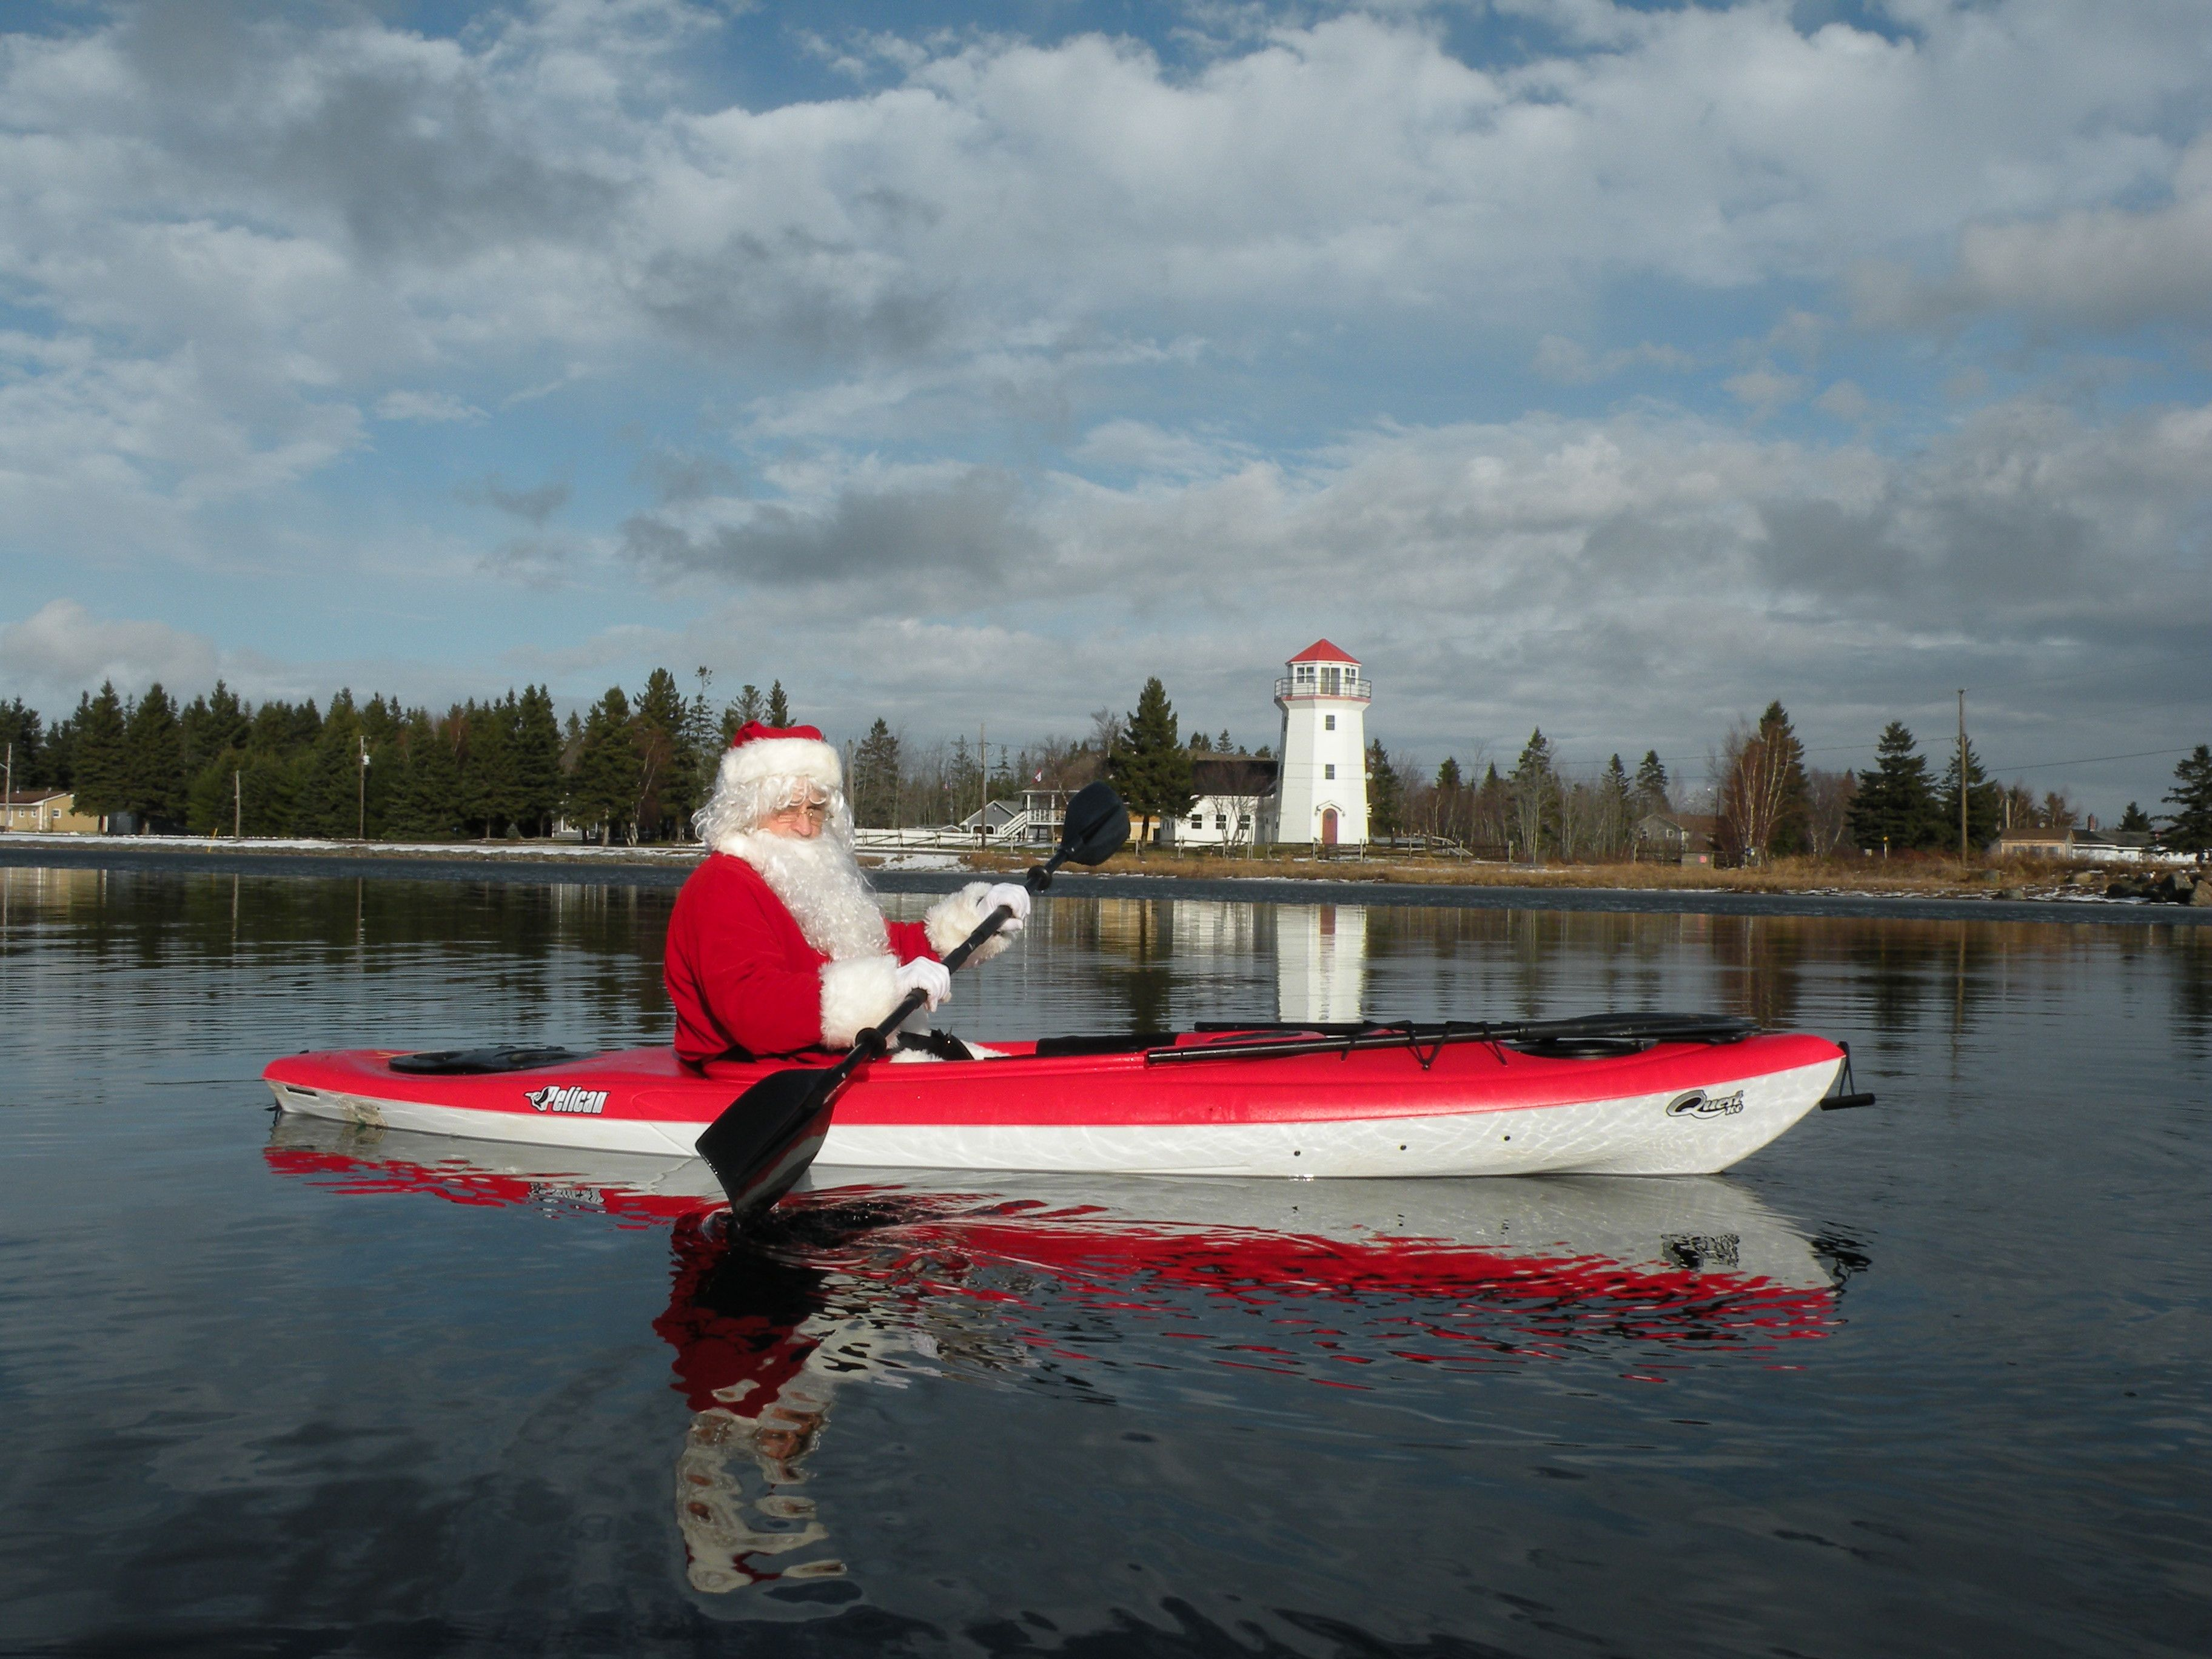 Santa kayaking in Richibucto-Village, New Brunswick, Canada on Dec 22, 2012. I great way to relax before the big night.